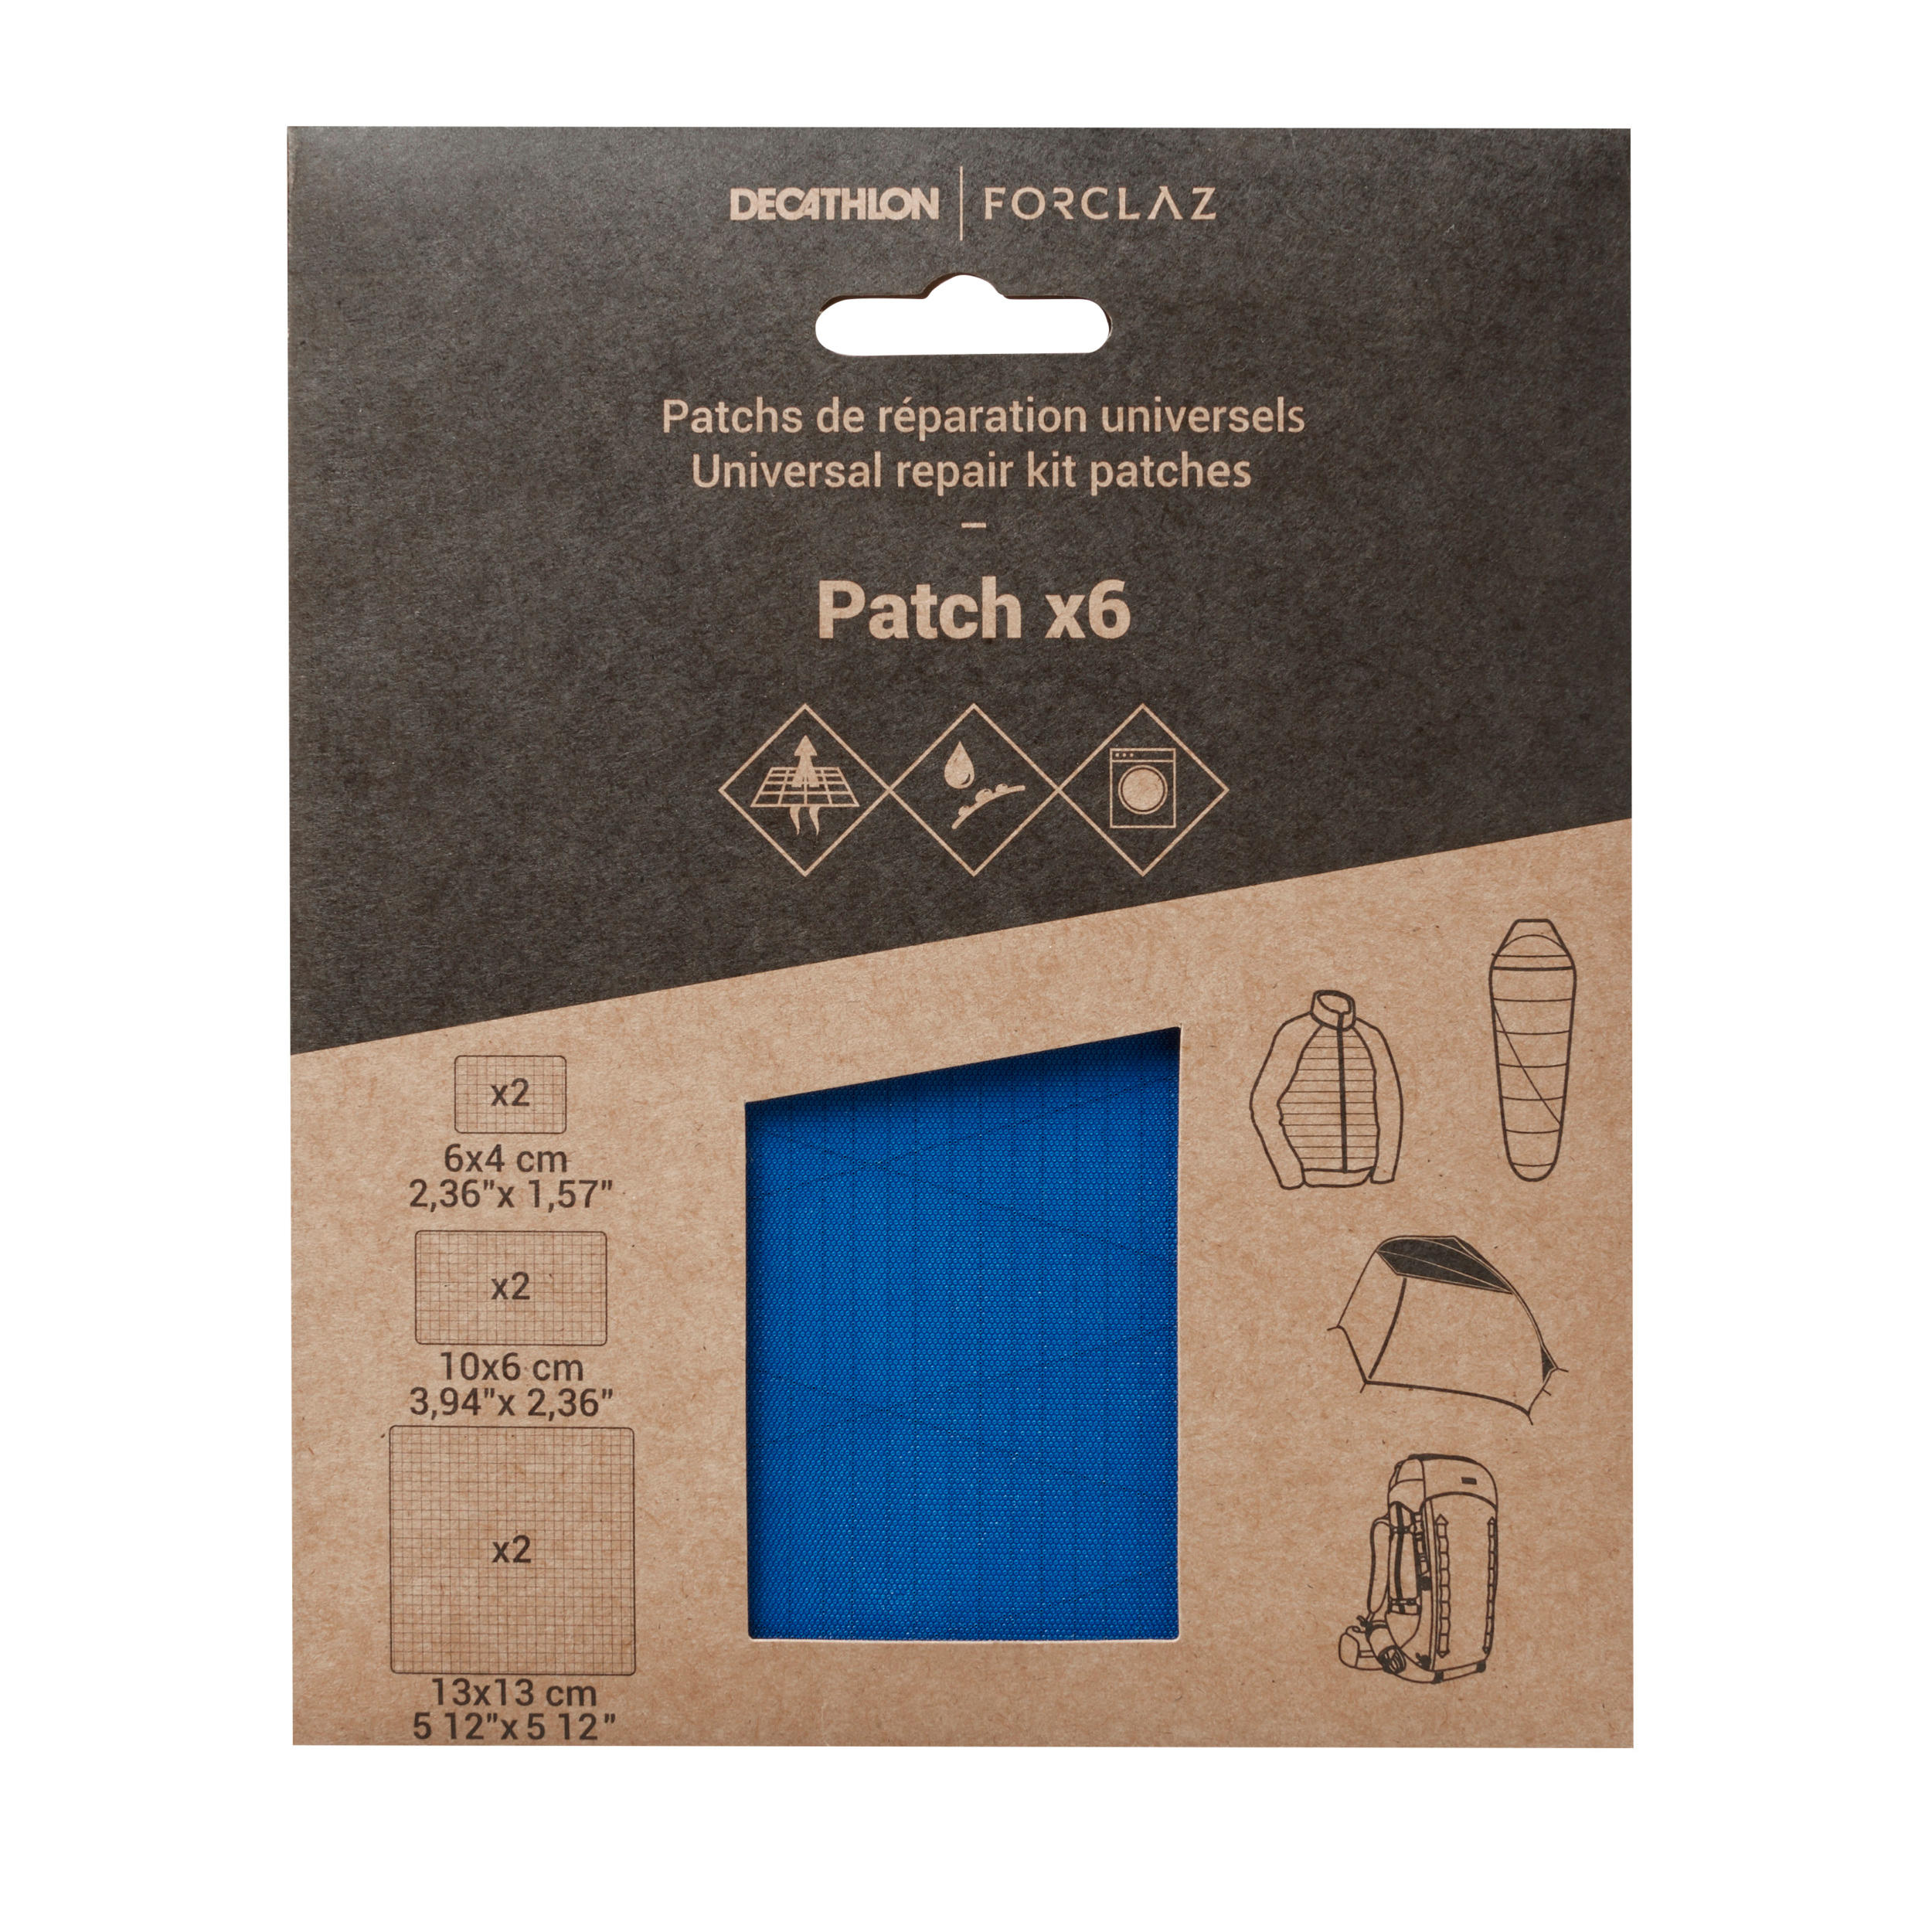 Peel and Stick patch adhesive set of 5 patches